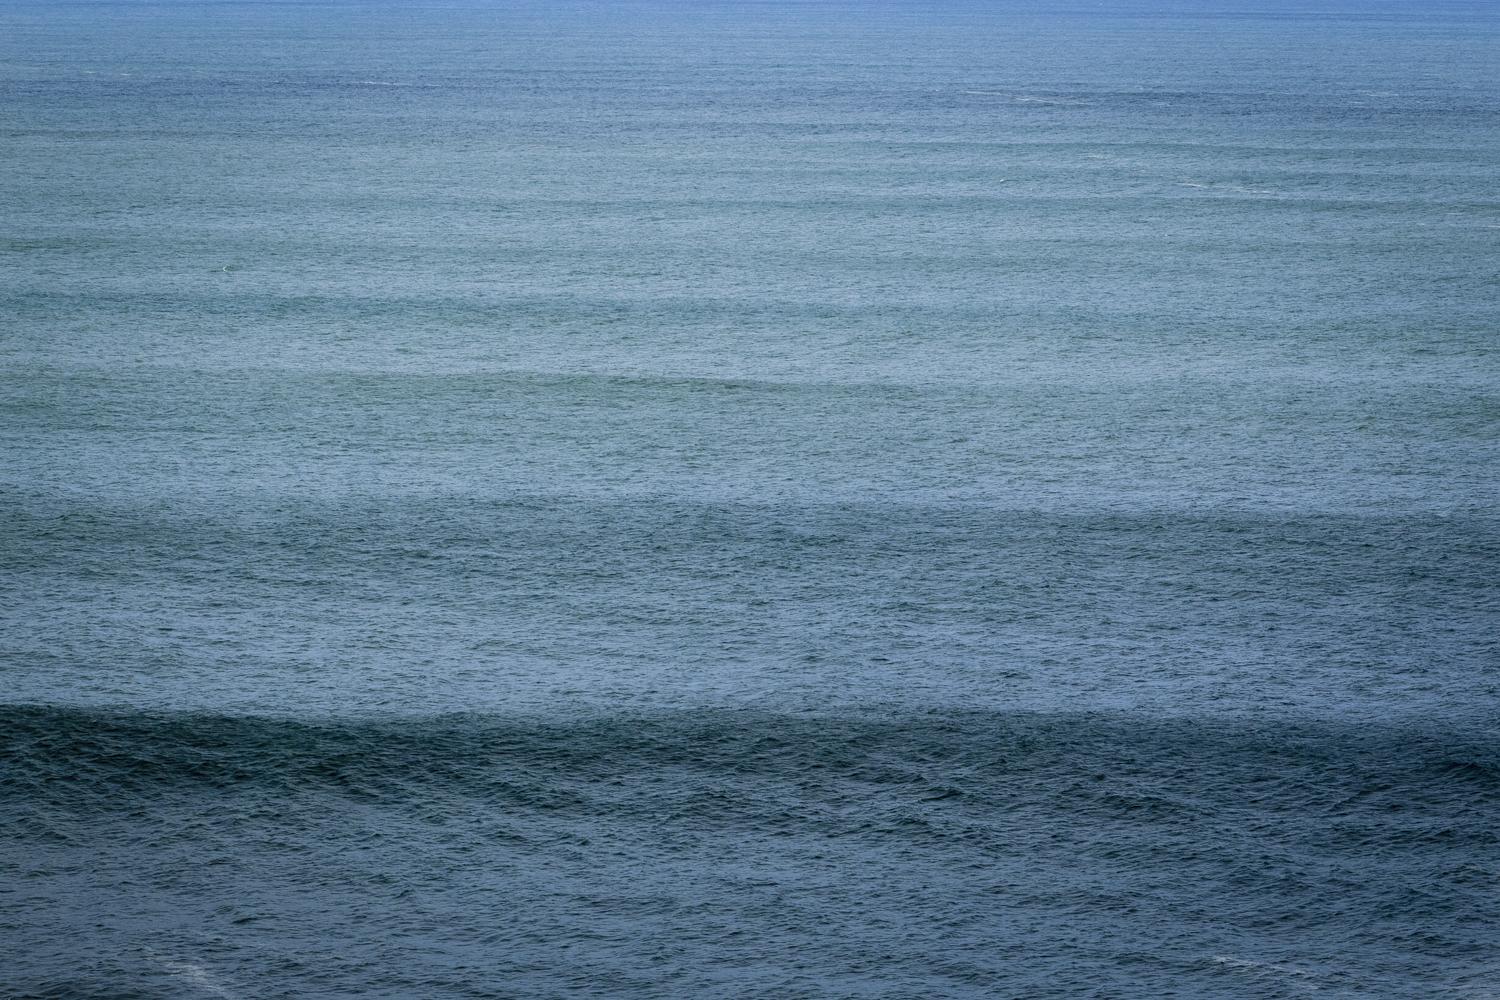 Swell stacked up to the horizon.